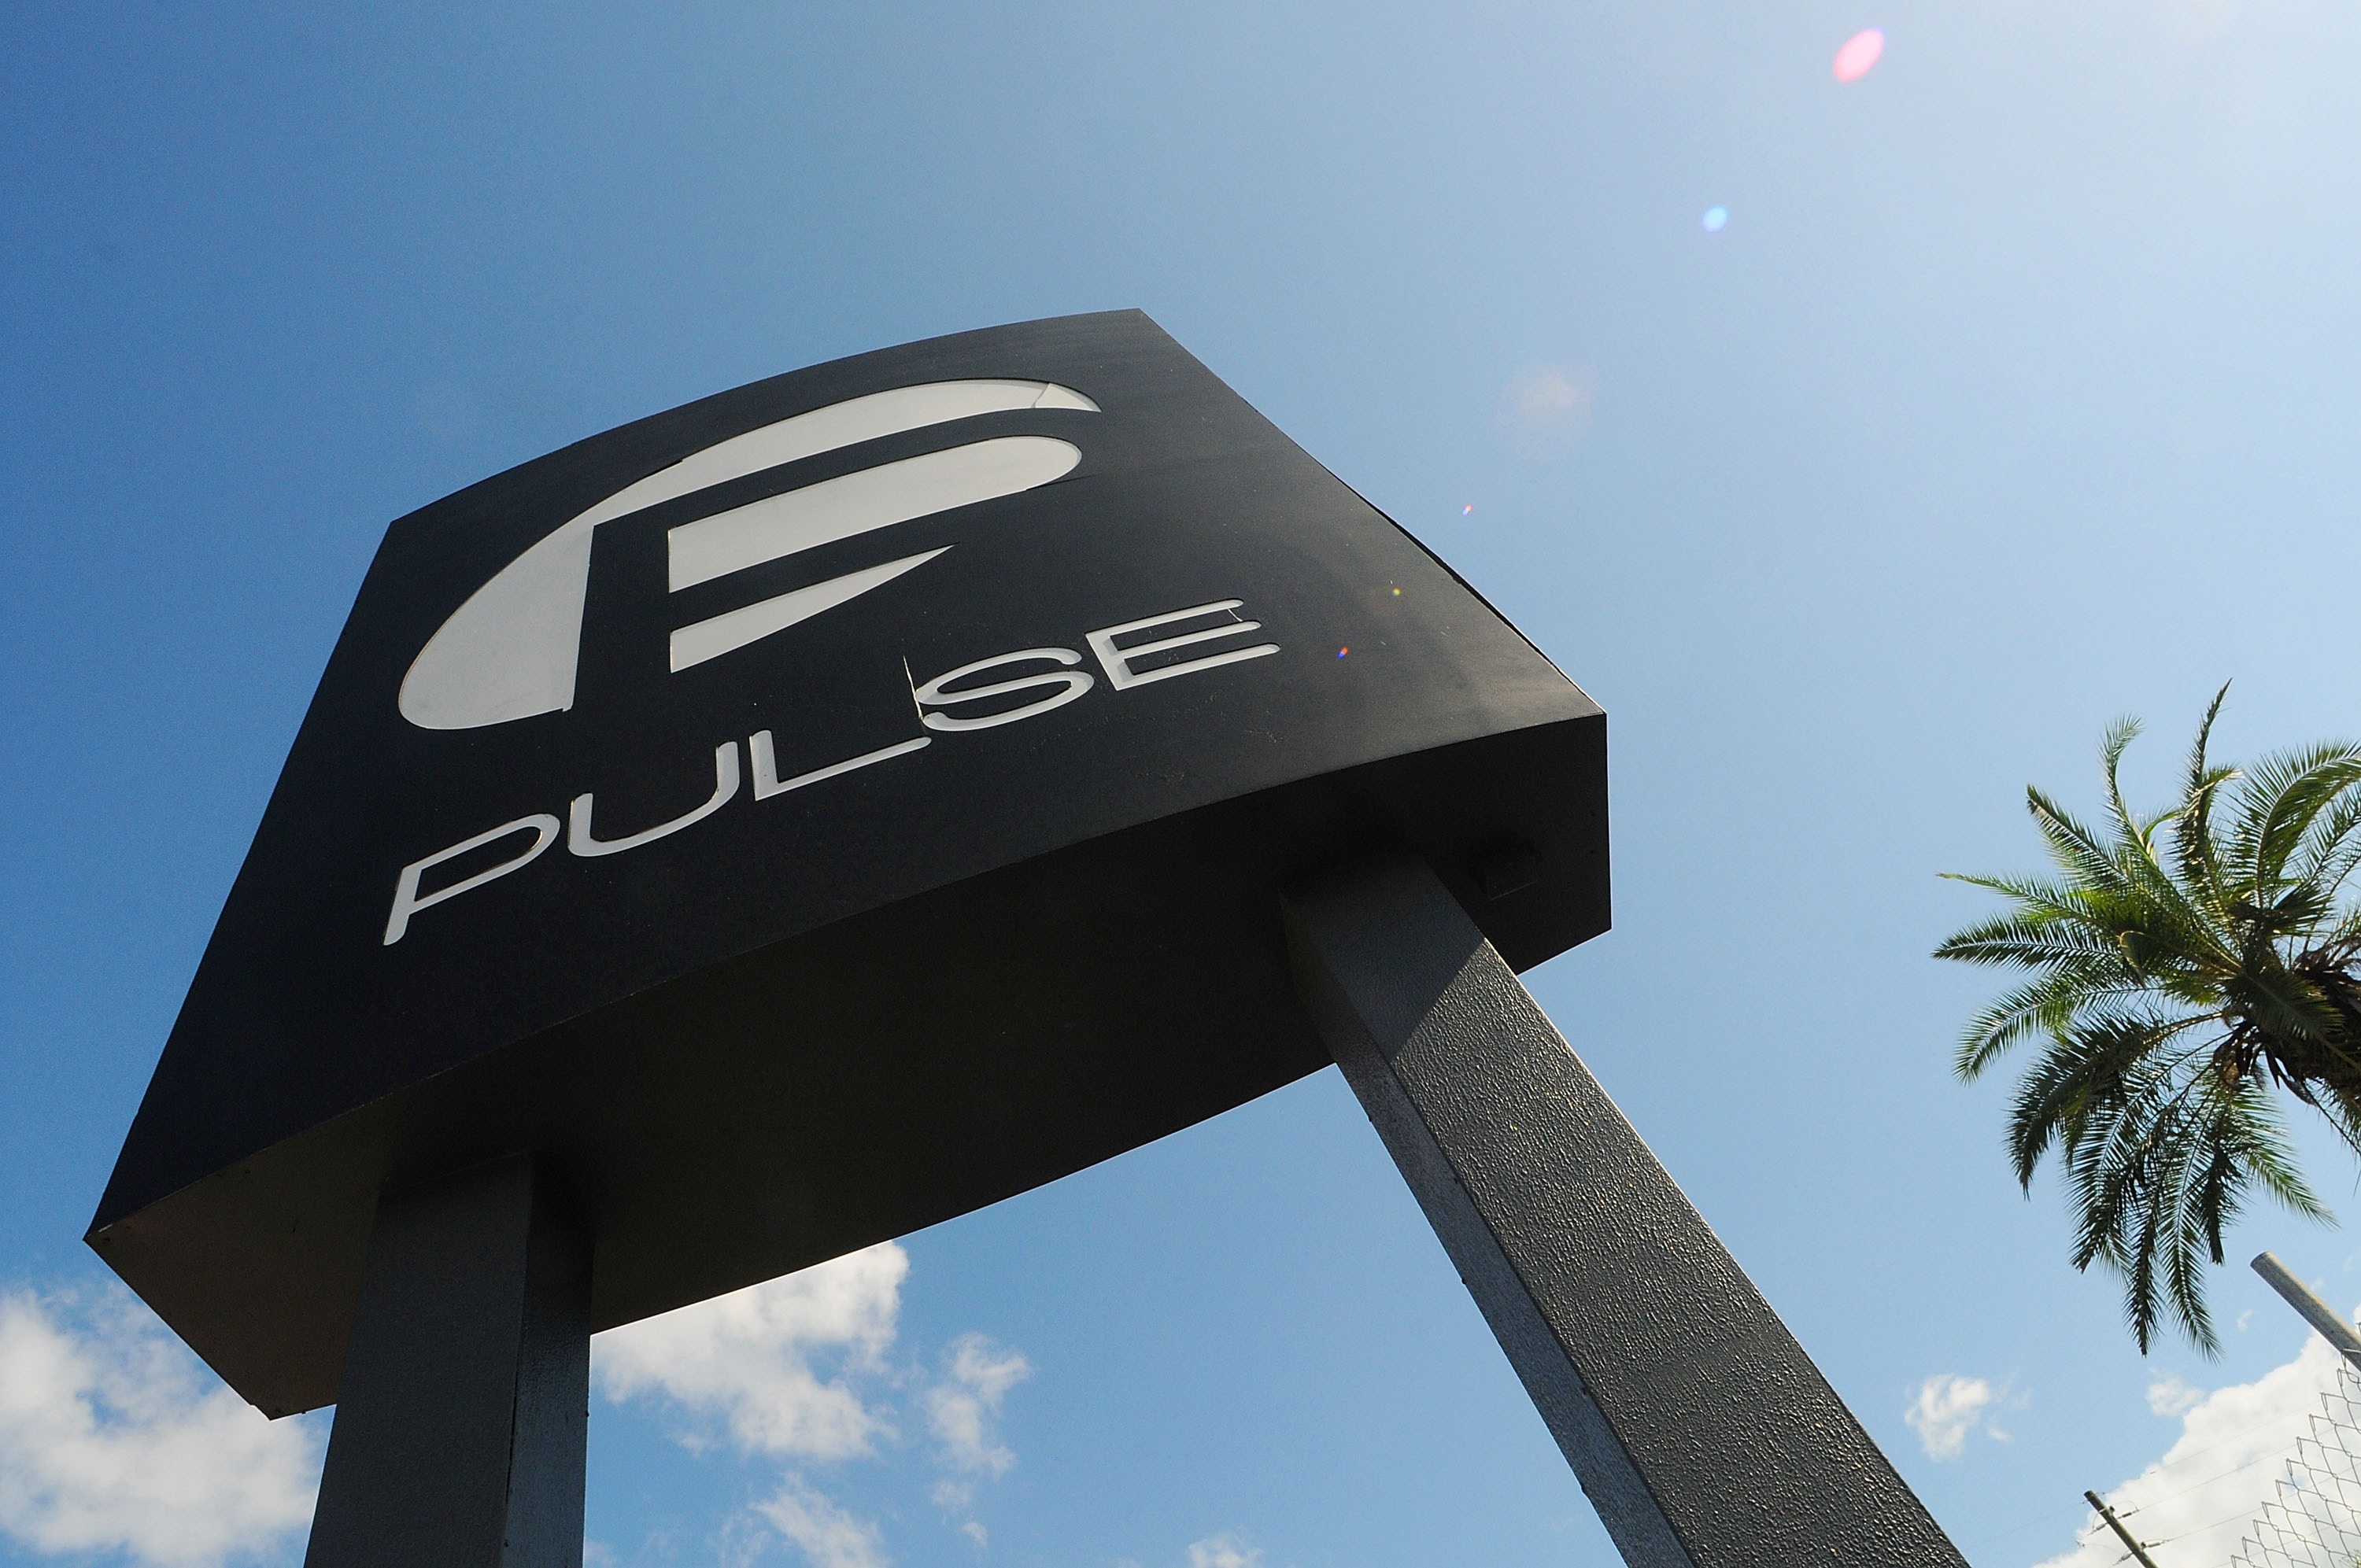 A view of the Pulse Nightclub sign on June 21, 2016 in Orlando, Florida. Orlando community continues to mourn deadly mass shooting at gay club.  The Orlando community continues to mourn the June 12 shooting at the Pulse nightclub in what is being called the worst mass shooting in American history, Omar Mir Seddique Mateen killed 49 people at the popular gay nightclub early last Sunday. Fifty-three people were wounded in the attack which authorities and community leaders are still trying to come to terms with.